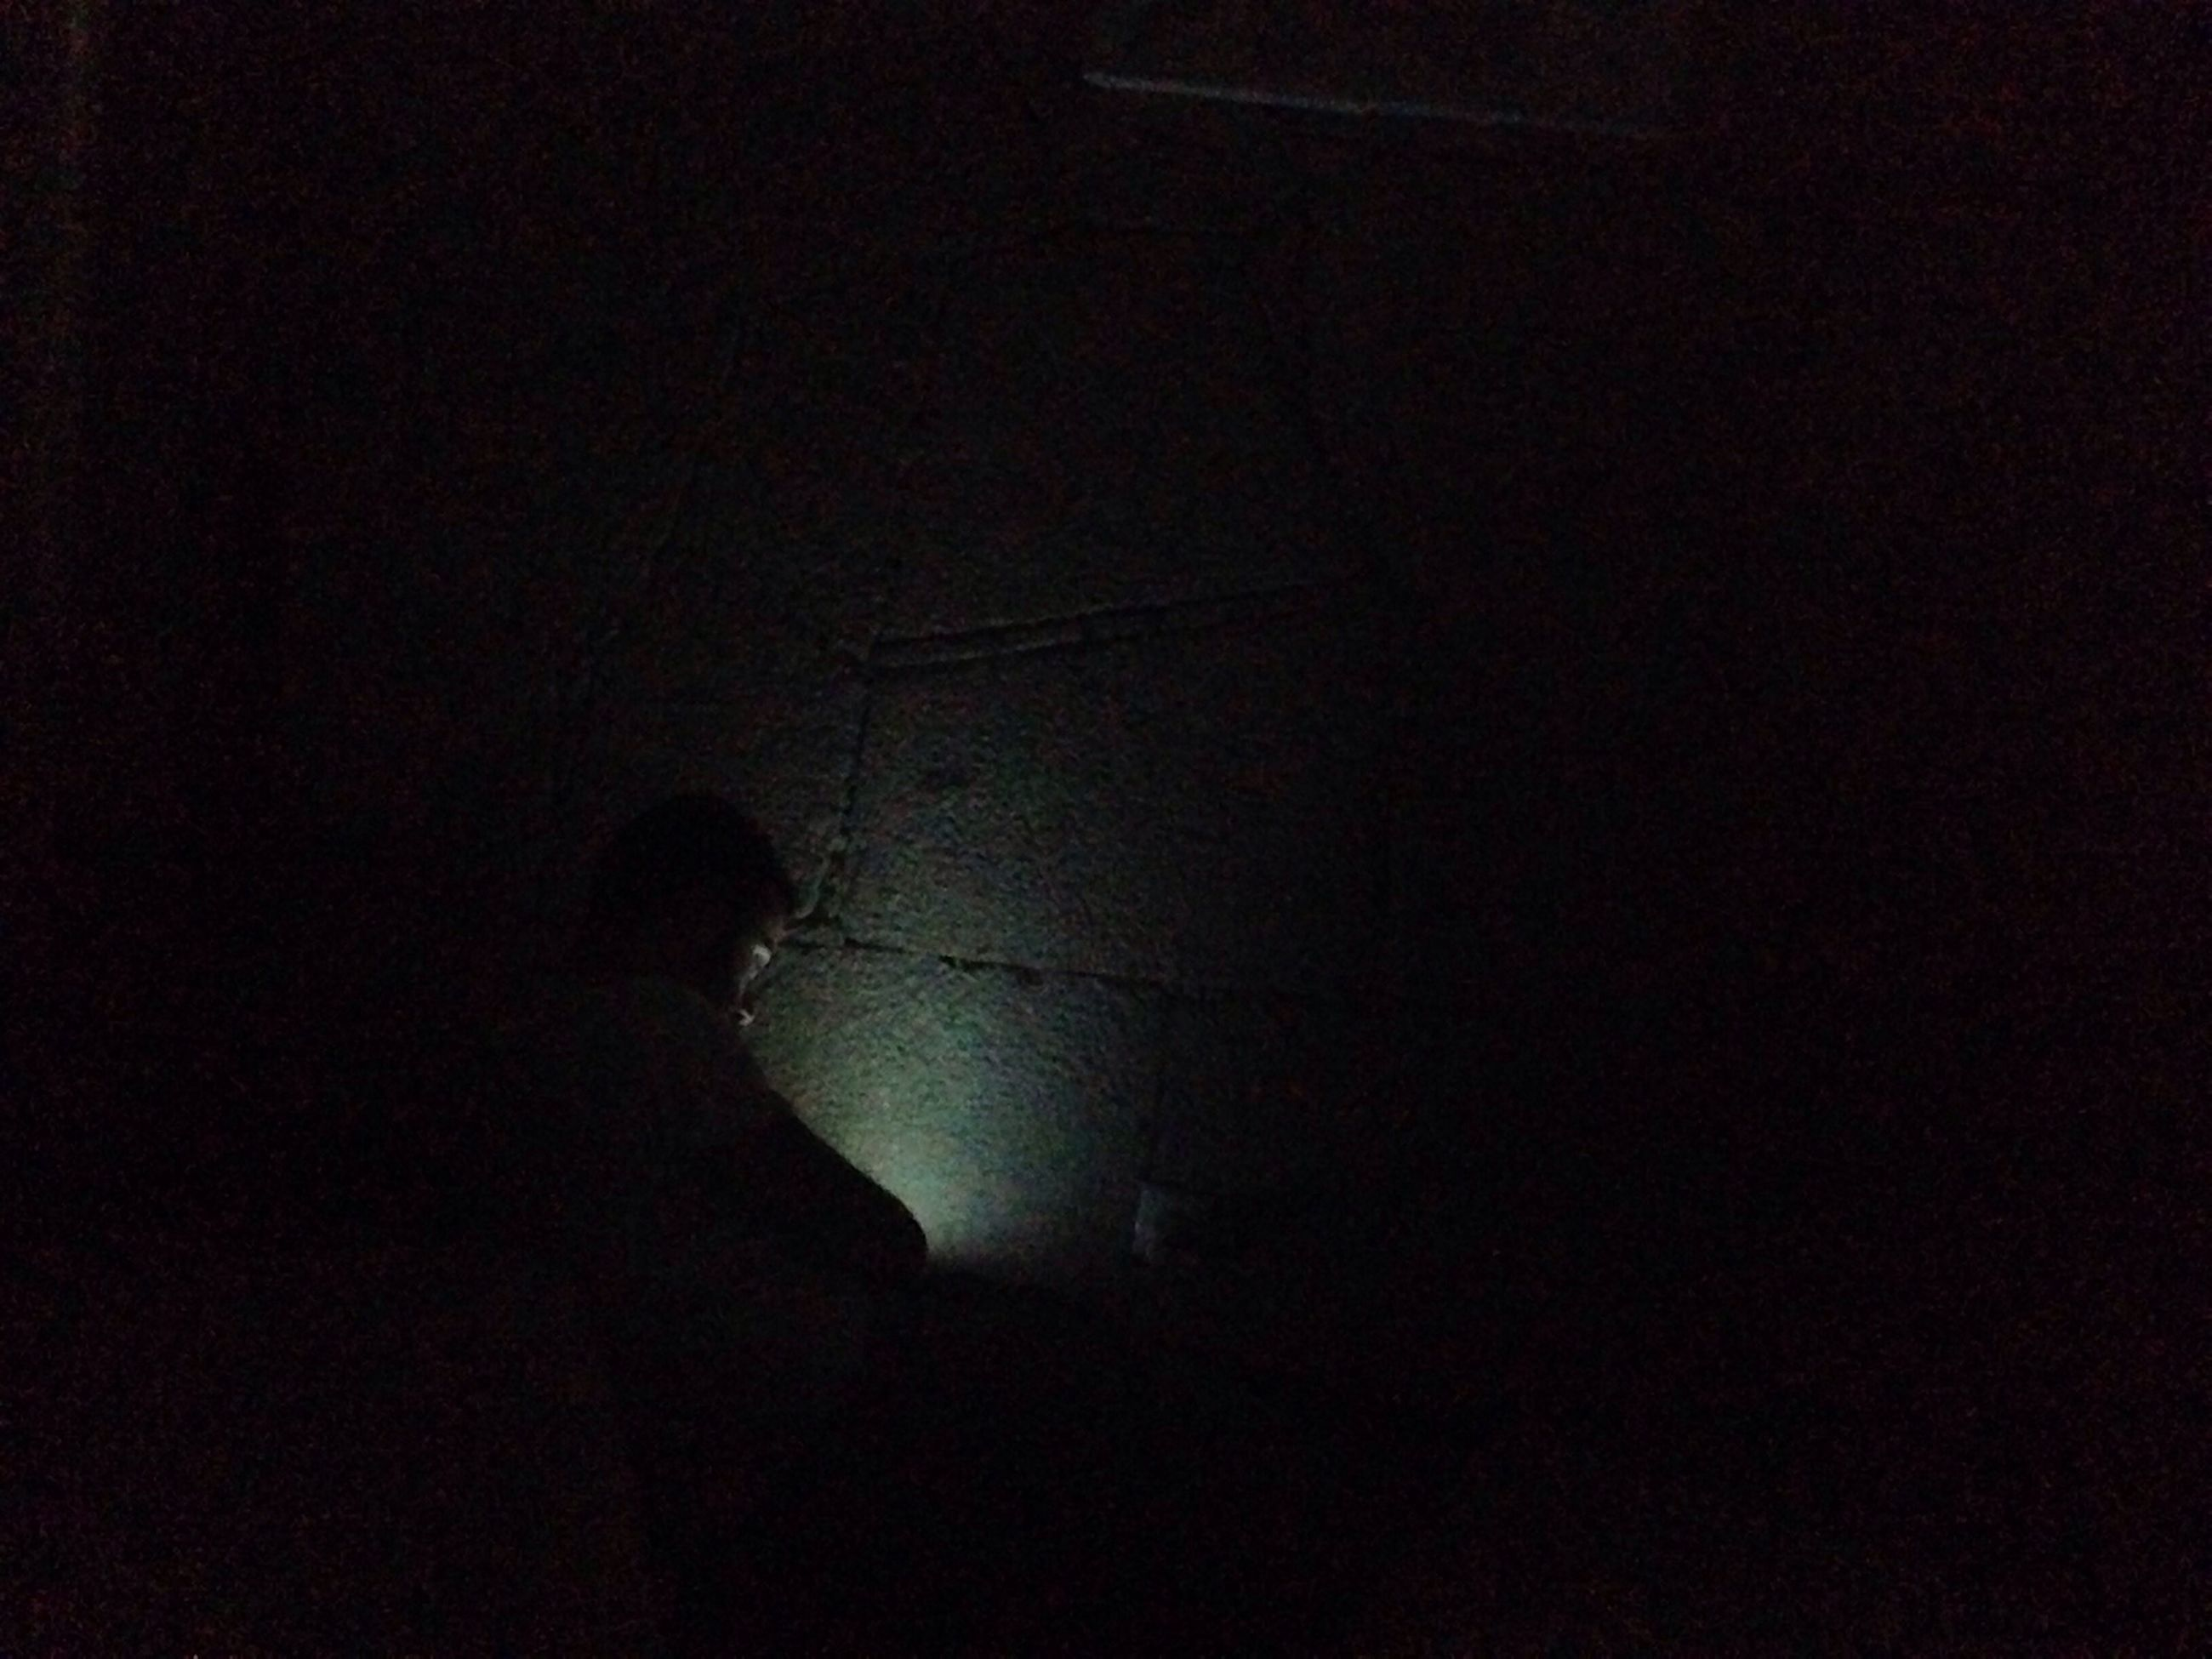 silhouette, night, dark, copy space, lifestyles, men, indoors, low angle view, unrecognizable person, leisure activity, standing, illuminated, light - natural phenomenon, outline, full length, mystery, darkness, person